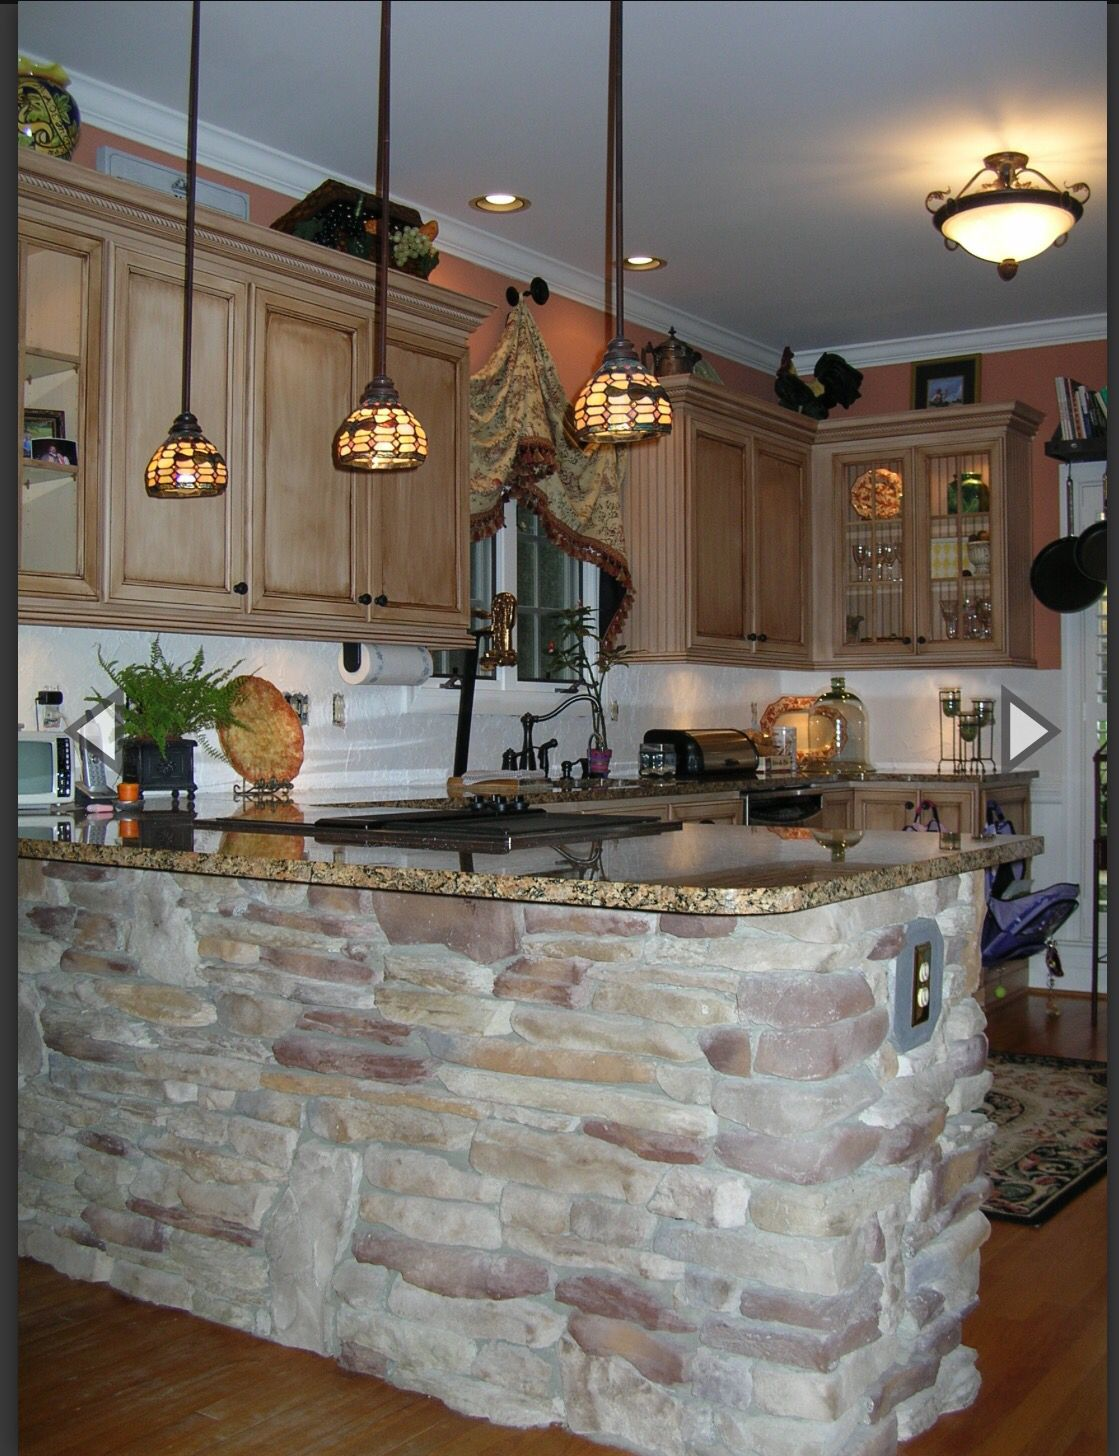 incredible kitchen half wall   Kitchen half wall in stone   Stone accent walls, Stone ...